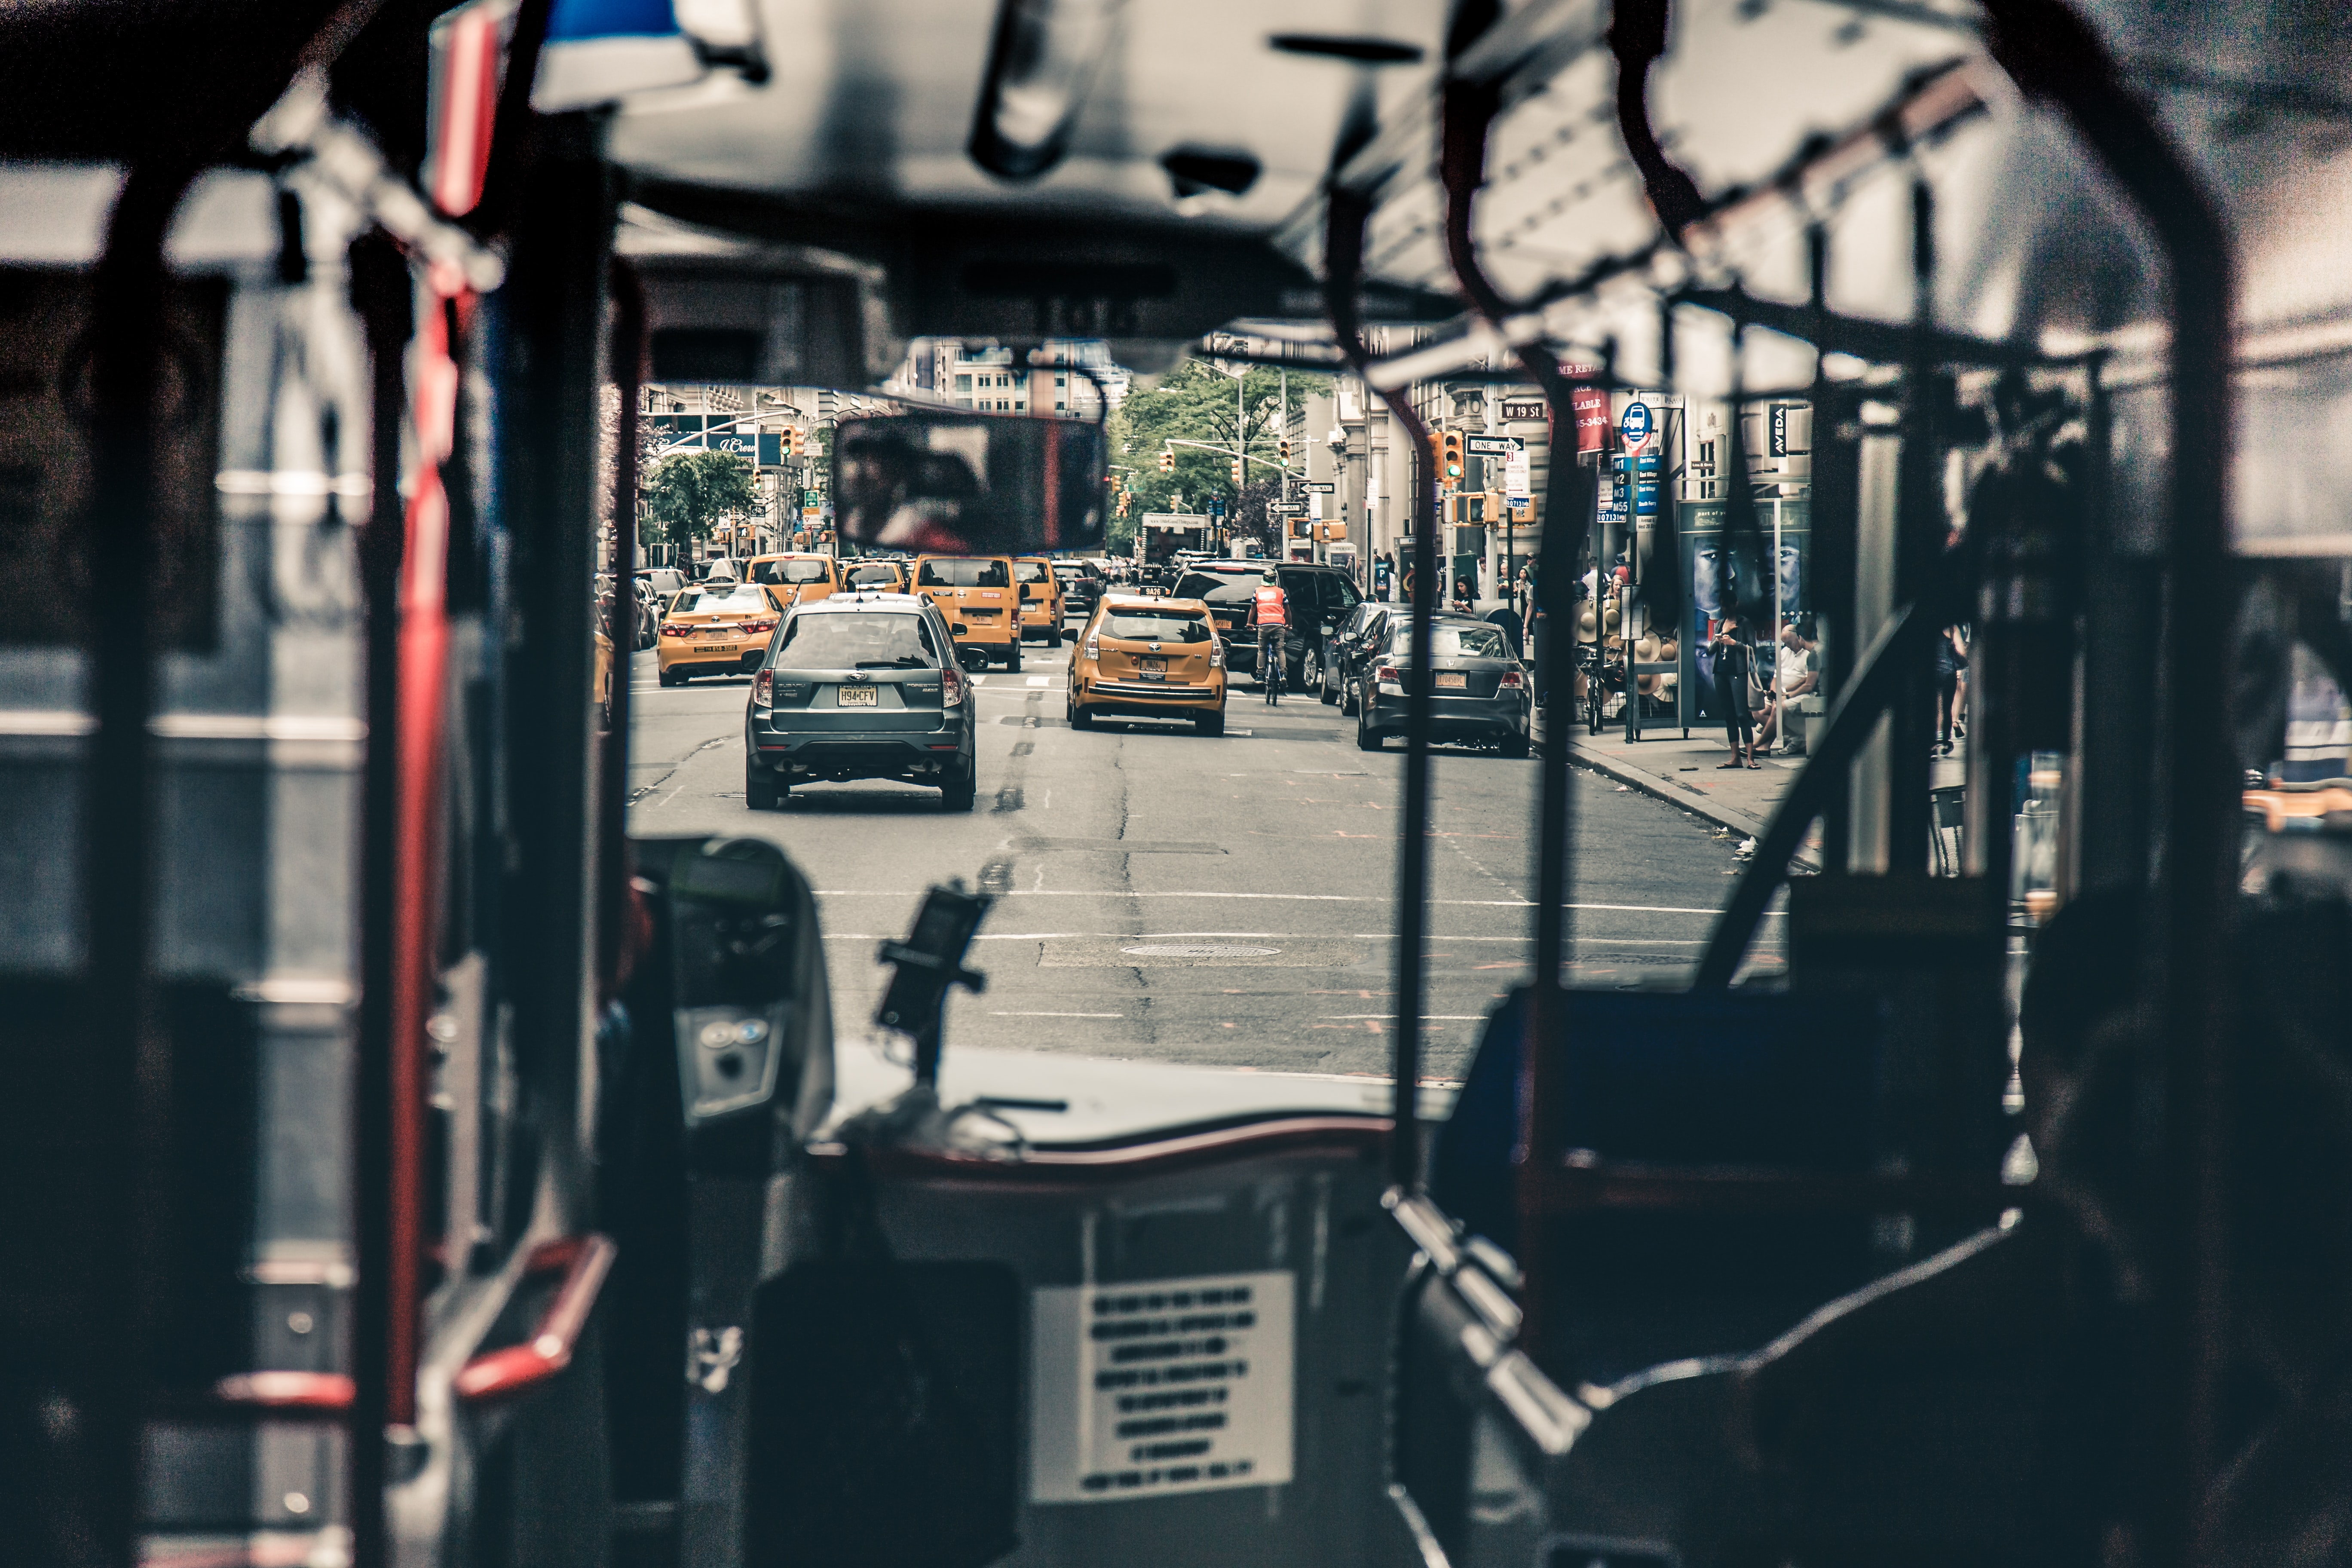 A shot looking through a public bus through the windshield onto a street filled with cars and taxis